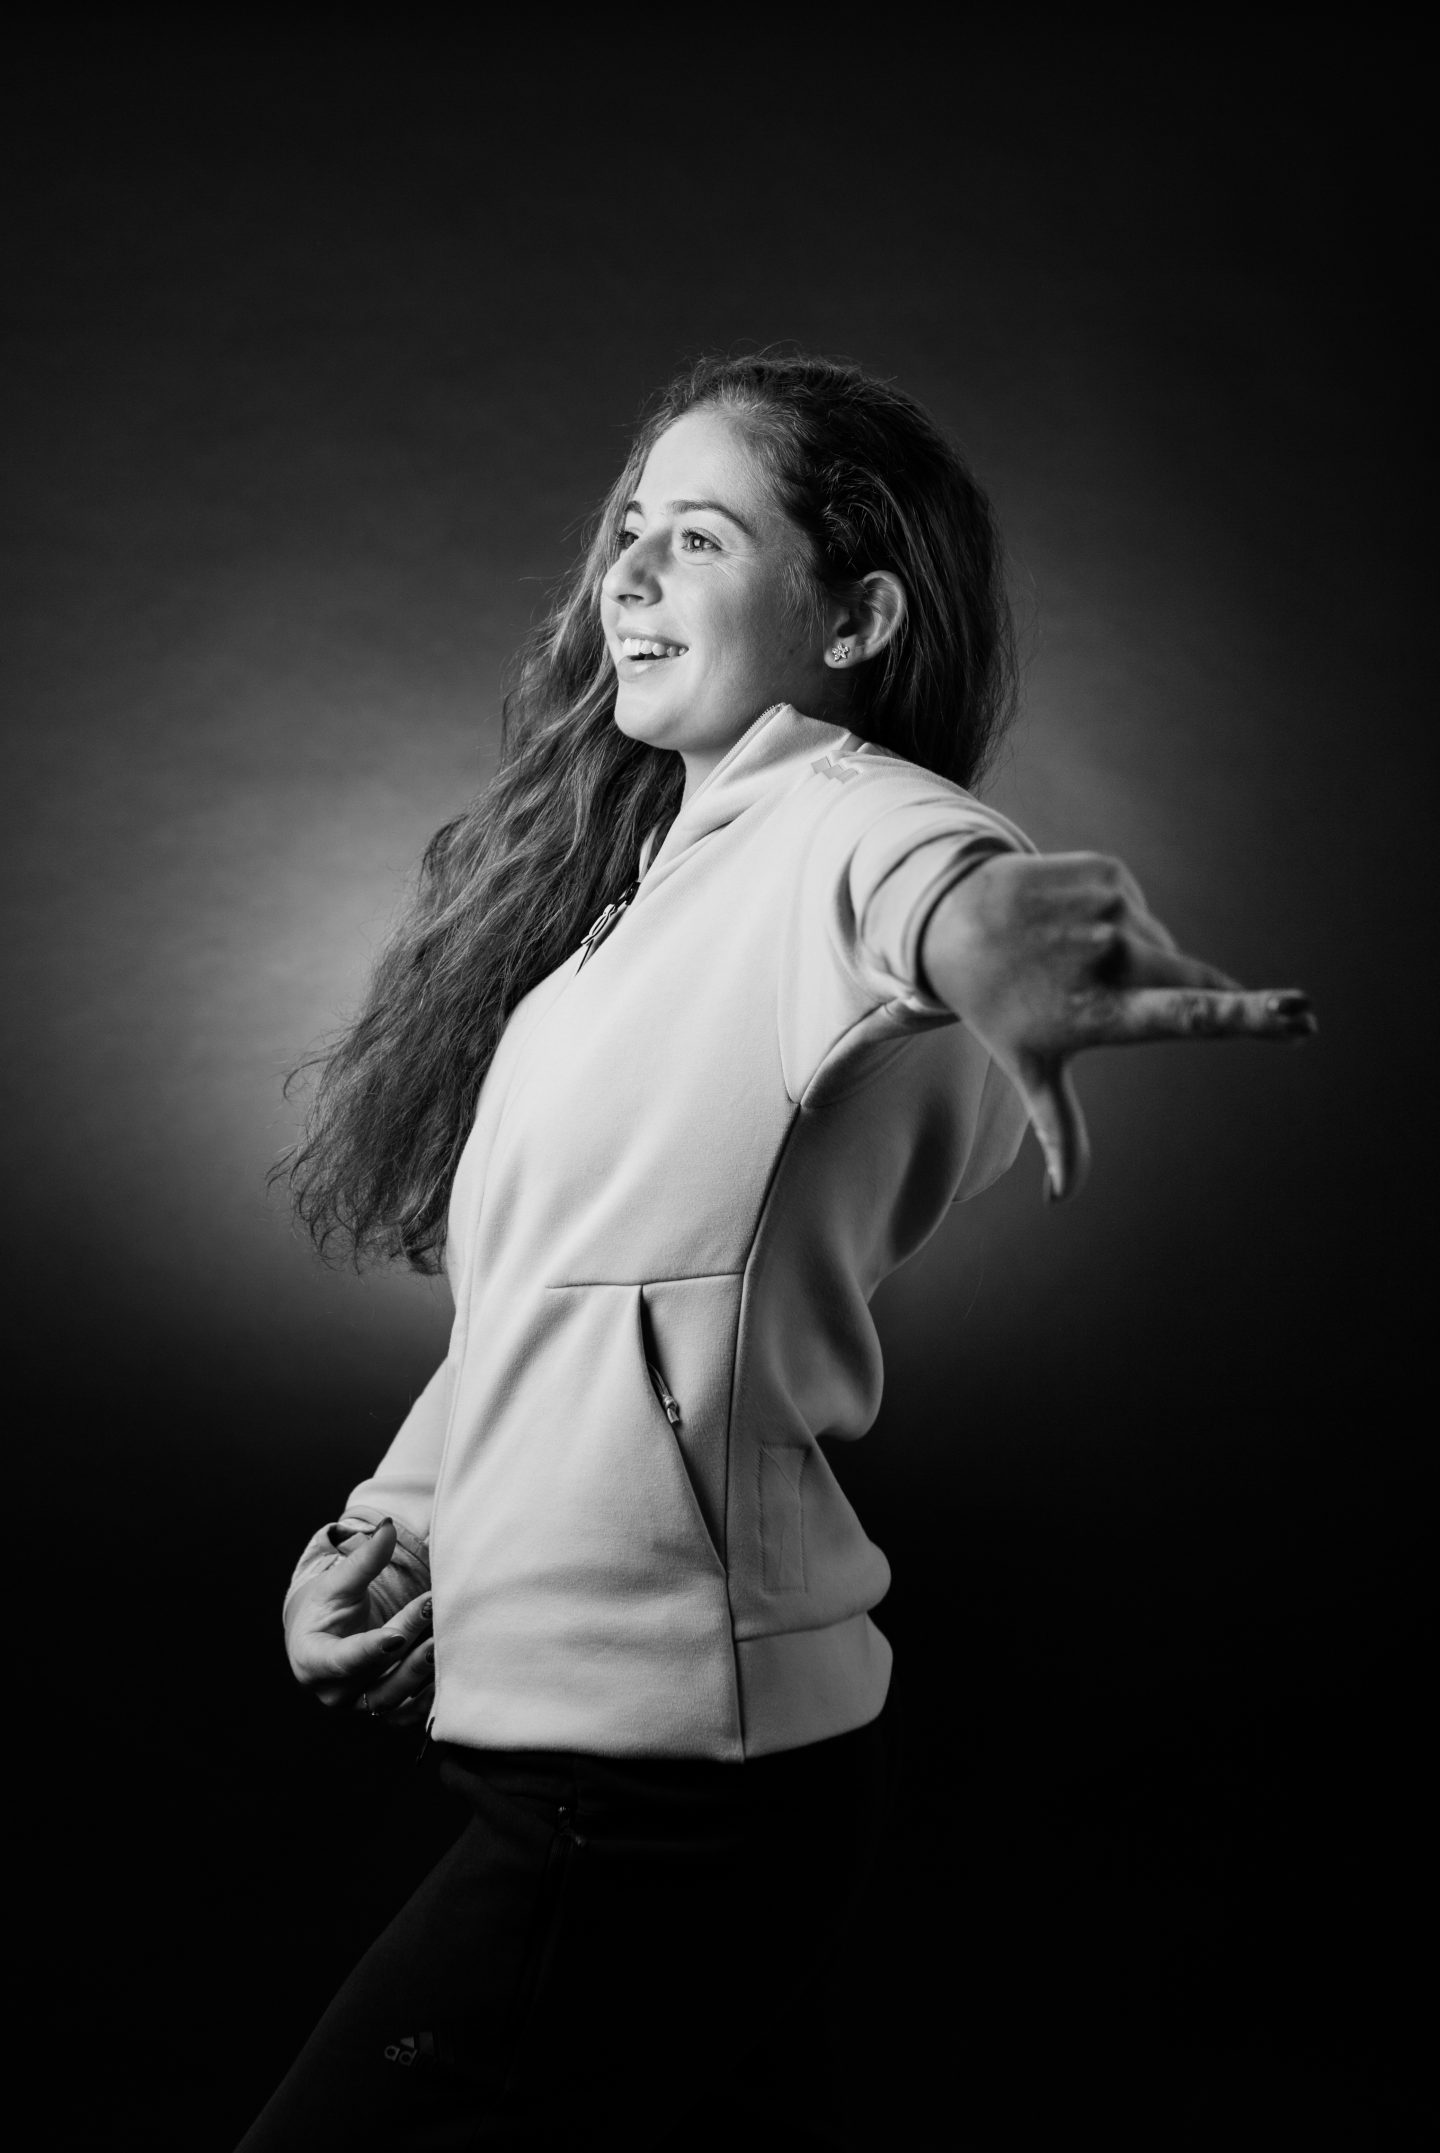 Jelena Ostapenko is turned to the left, smilingly pointing with her finger. Tennis; Adidas; Reebok; GamePlan A; Champion; Inspiration; Motivation; Grand Slam; Winner